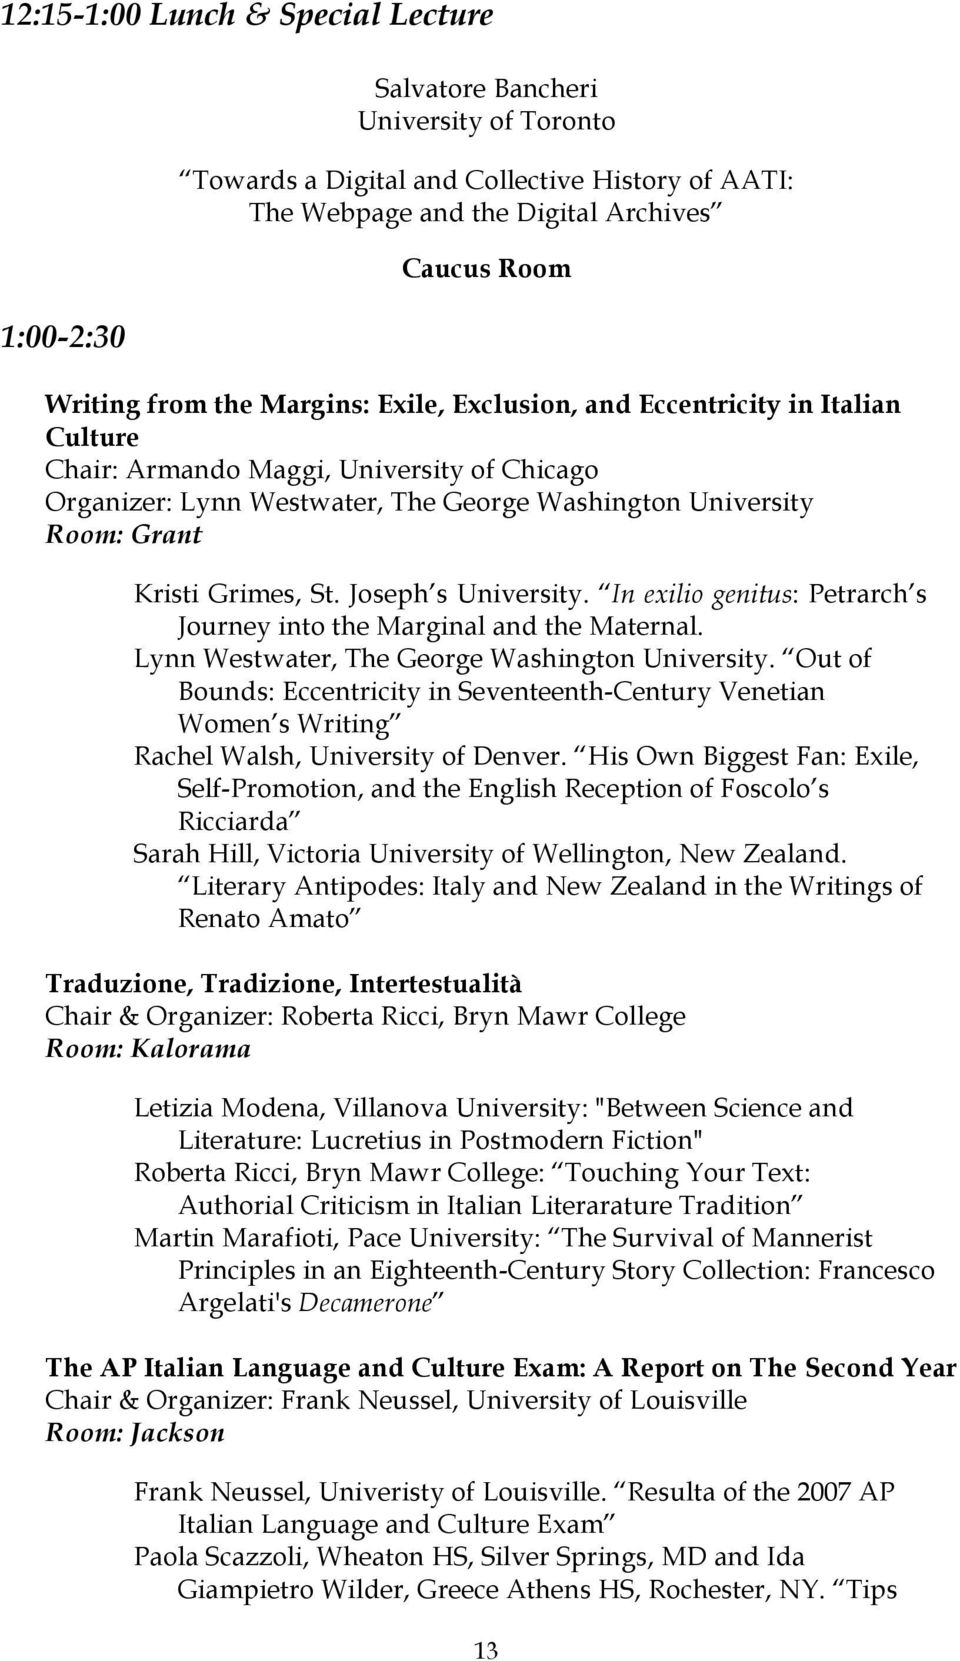 St. Joseph s University. In exilio genitus: Petrarch s Journey into the Marginal and the Maternal. Lynn Westwater, The George Washington University.